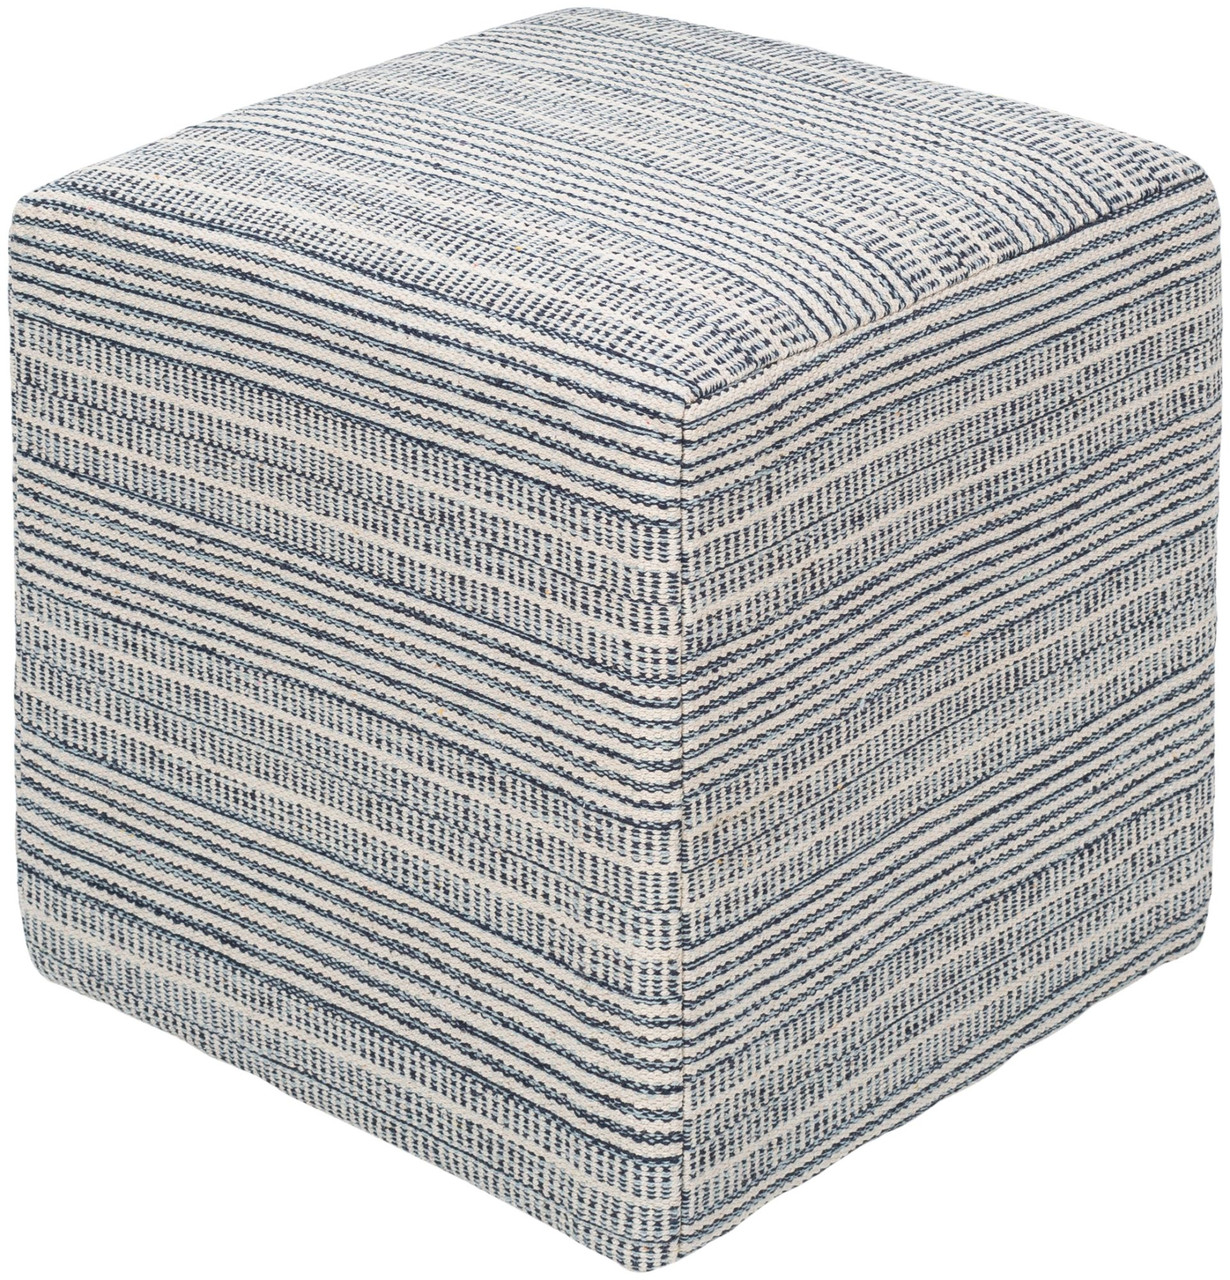 18 Blue White Striped Square Pouf Ottoman Christmas Central